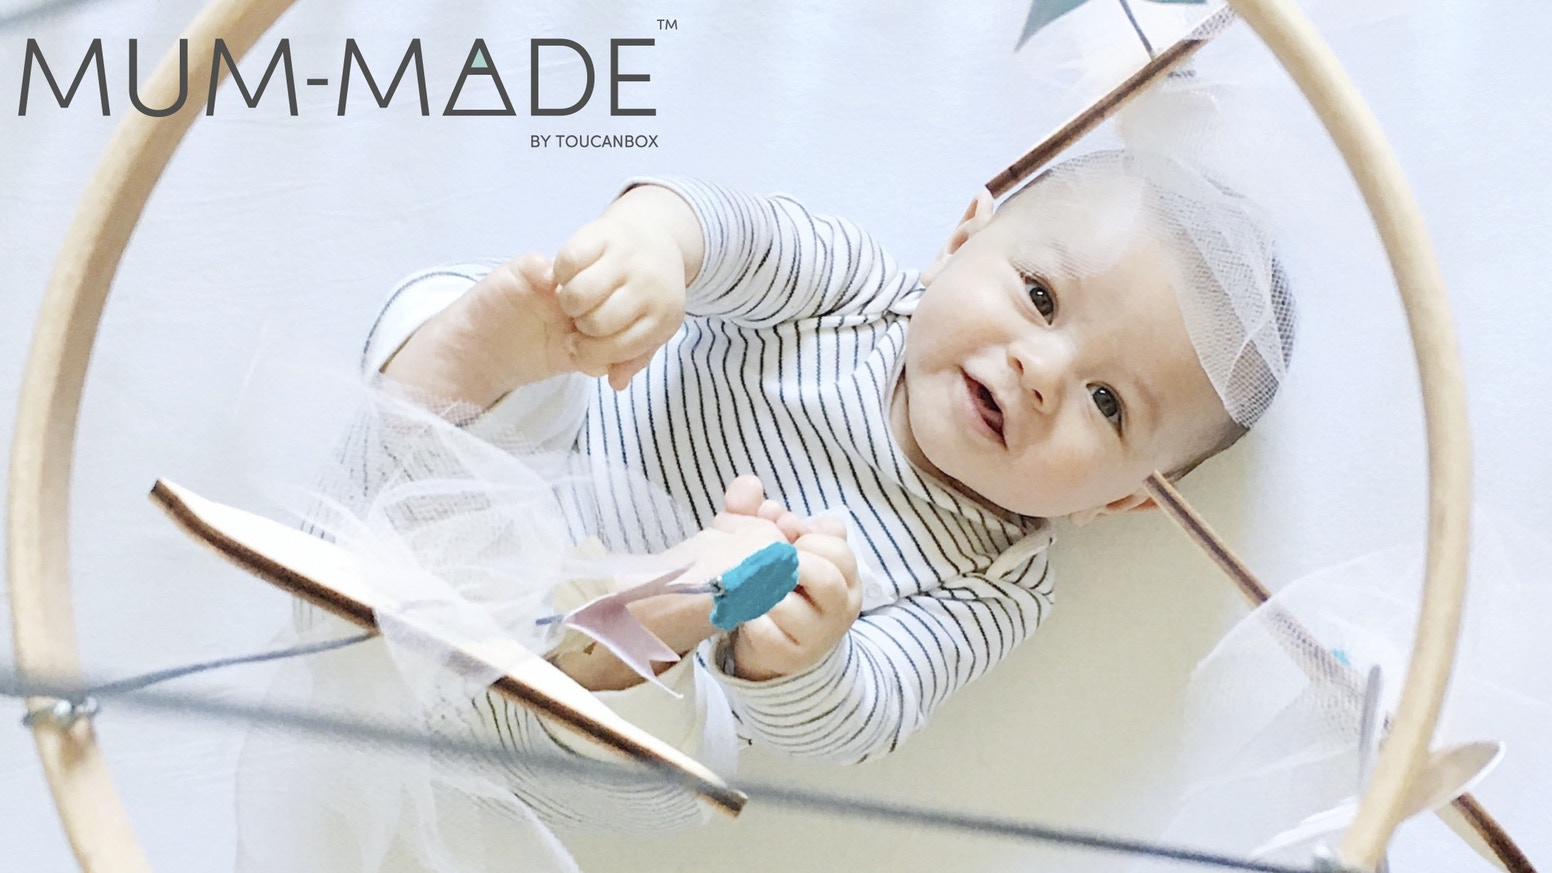 Give mums the power to assemble, build and customise unique keepsakes for the wonderful new addition to their lives.